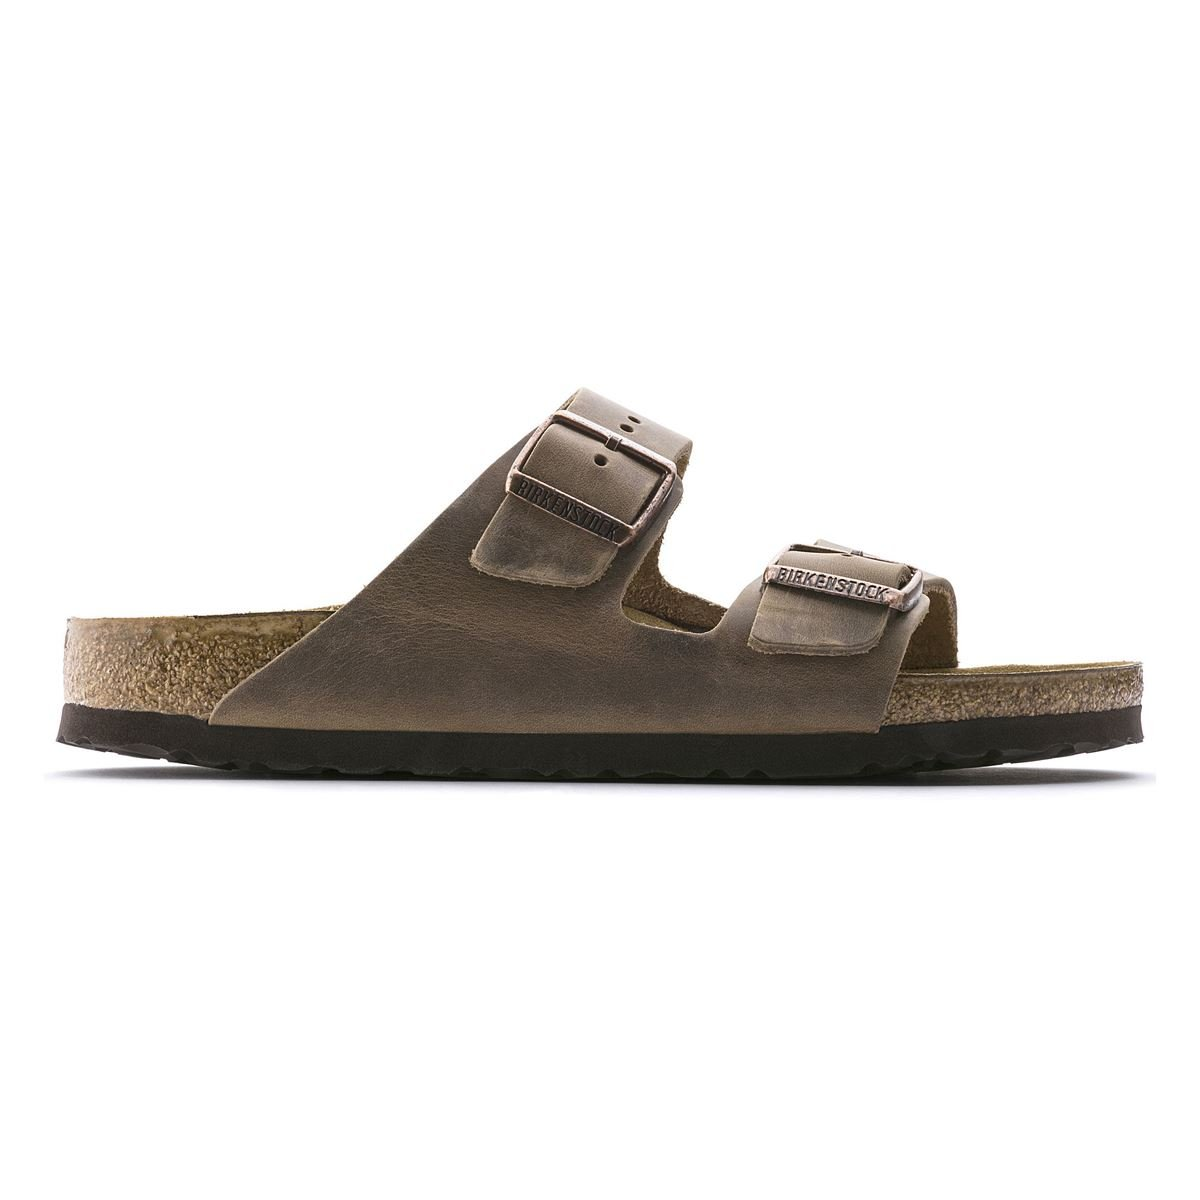 Birkenstock Men's Arizona 2-Strap Cork Footbed Sandal Tobacco 44 M EU